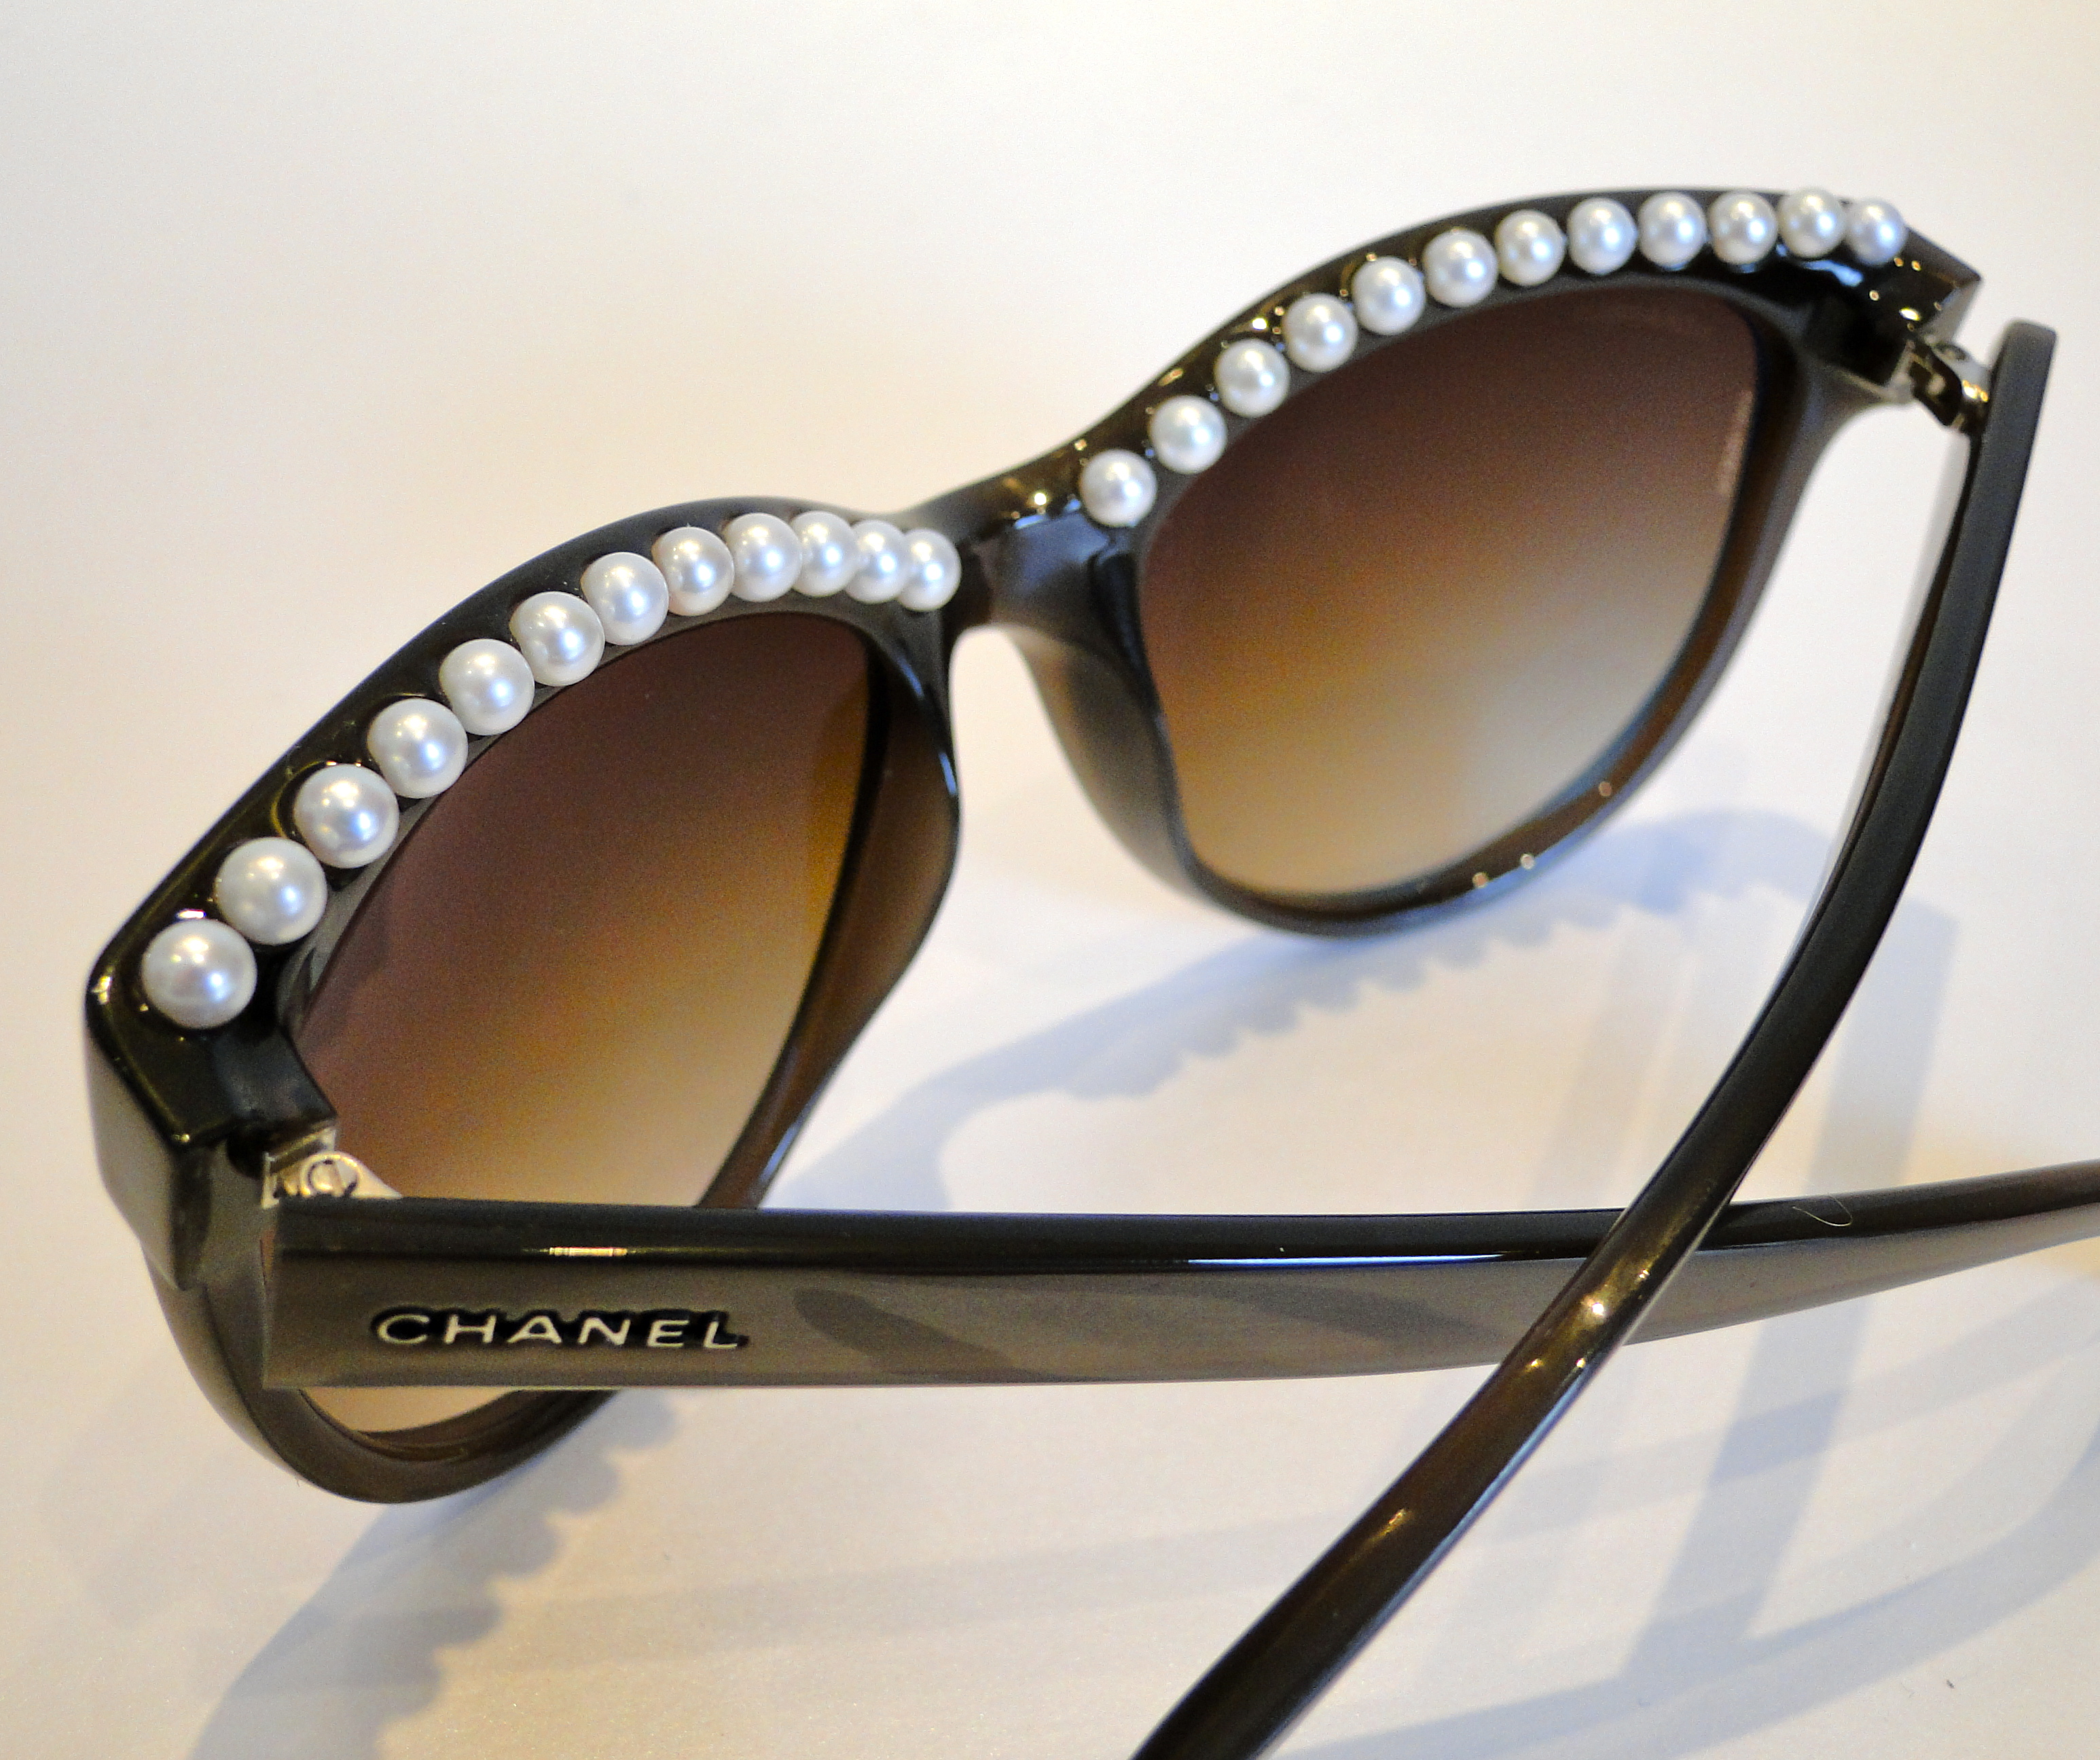 Chanel Eyeglass Frames With Pearls : Chanel Pearl Sunglasses The Luxe List